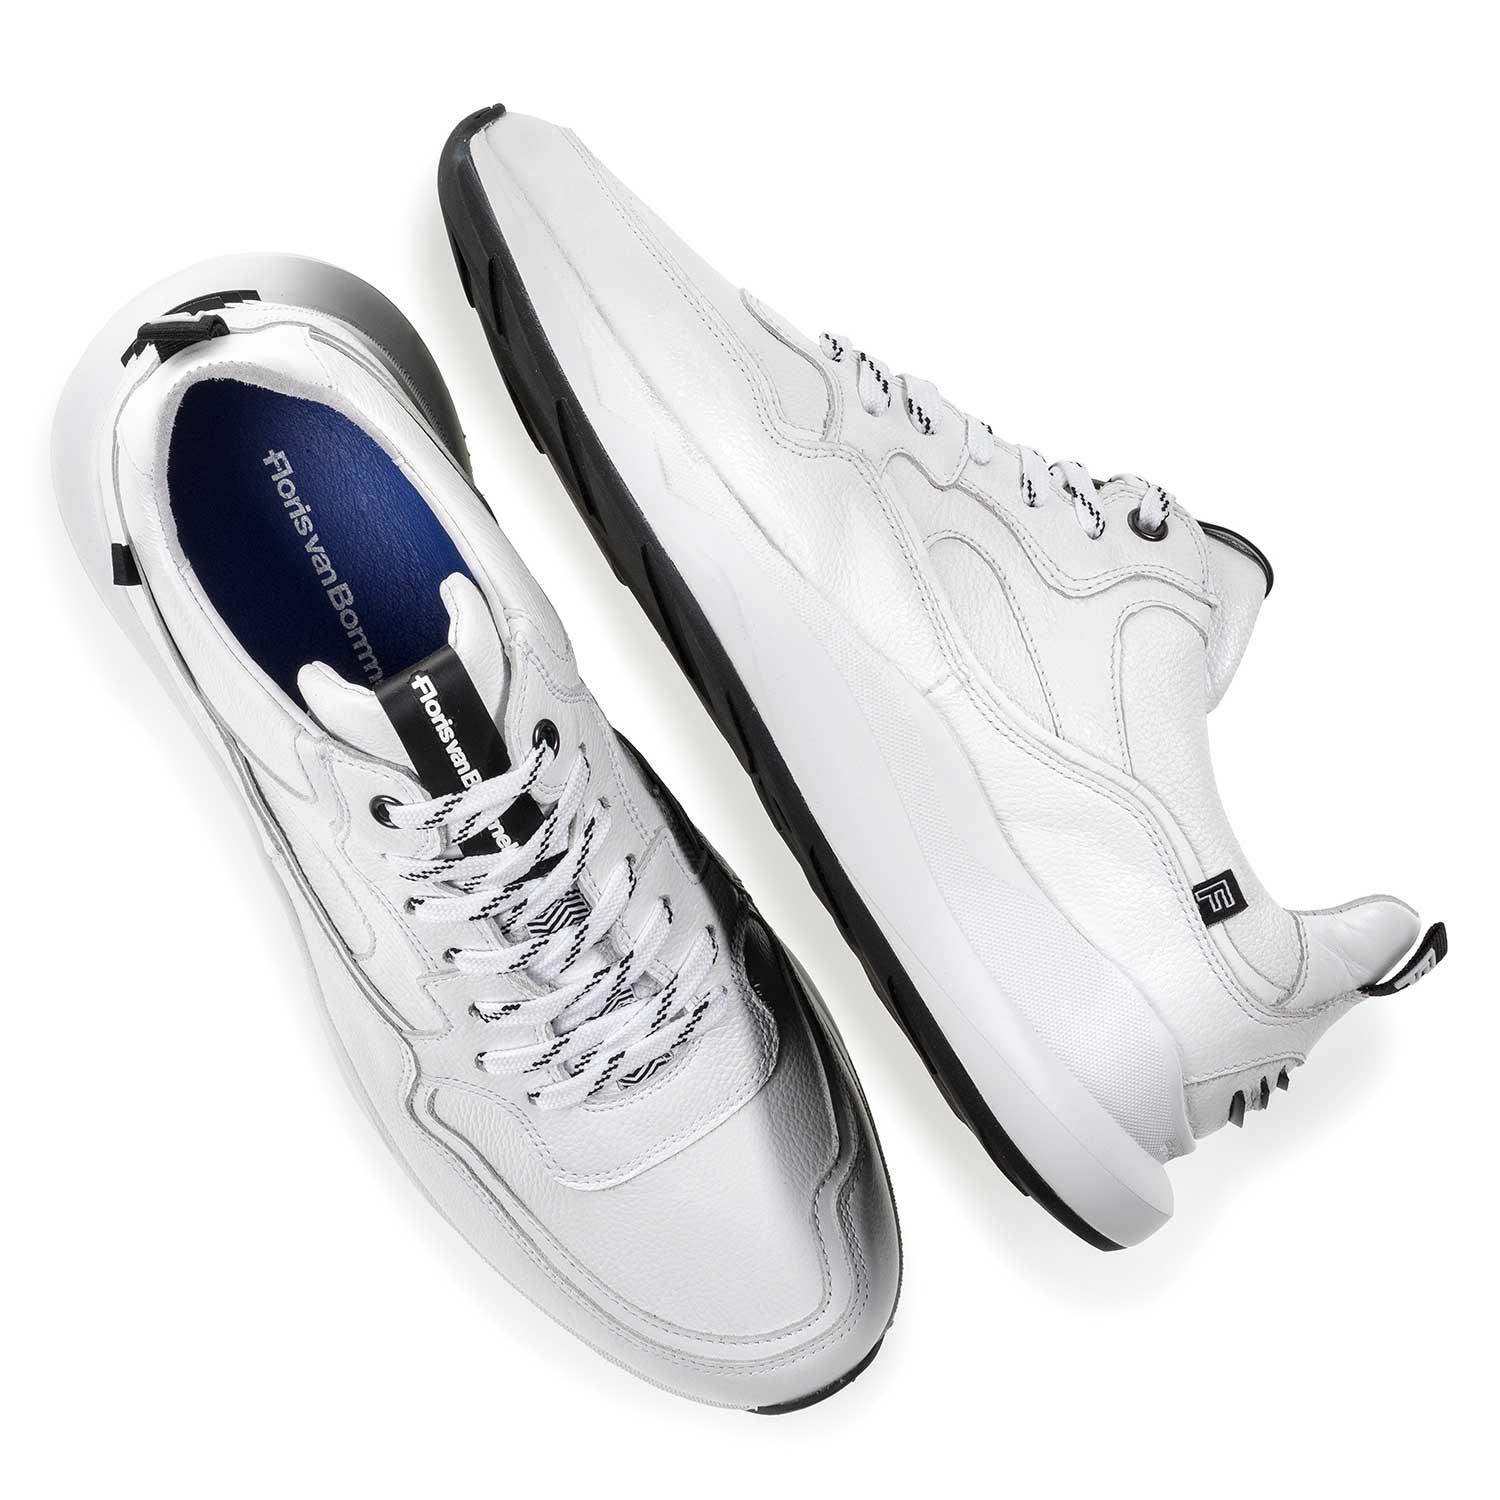 16269/01 - White calf leather sneaker with fine texture